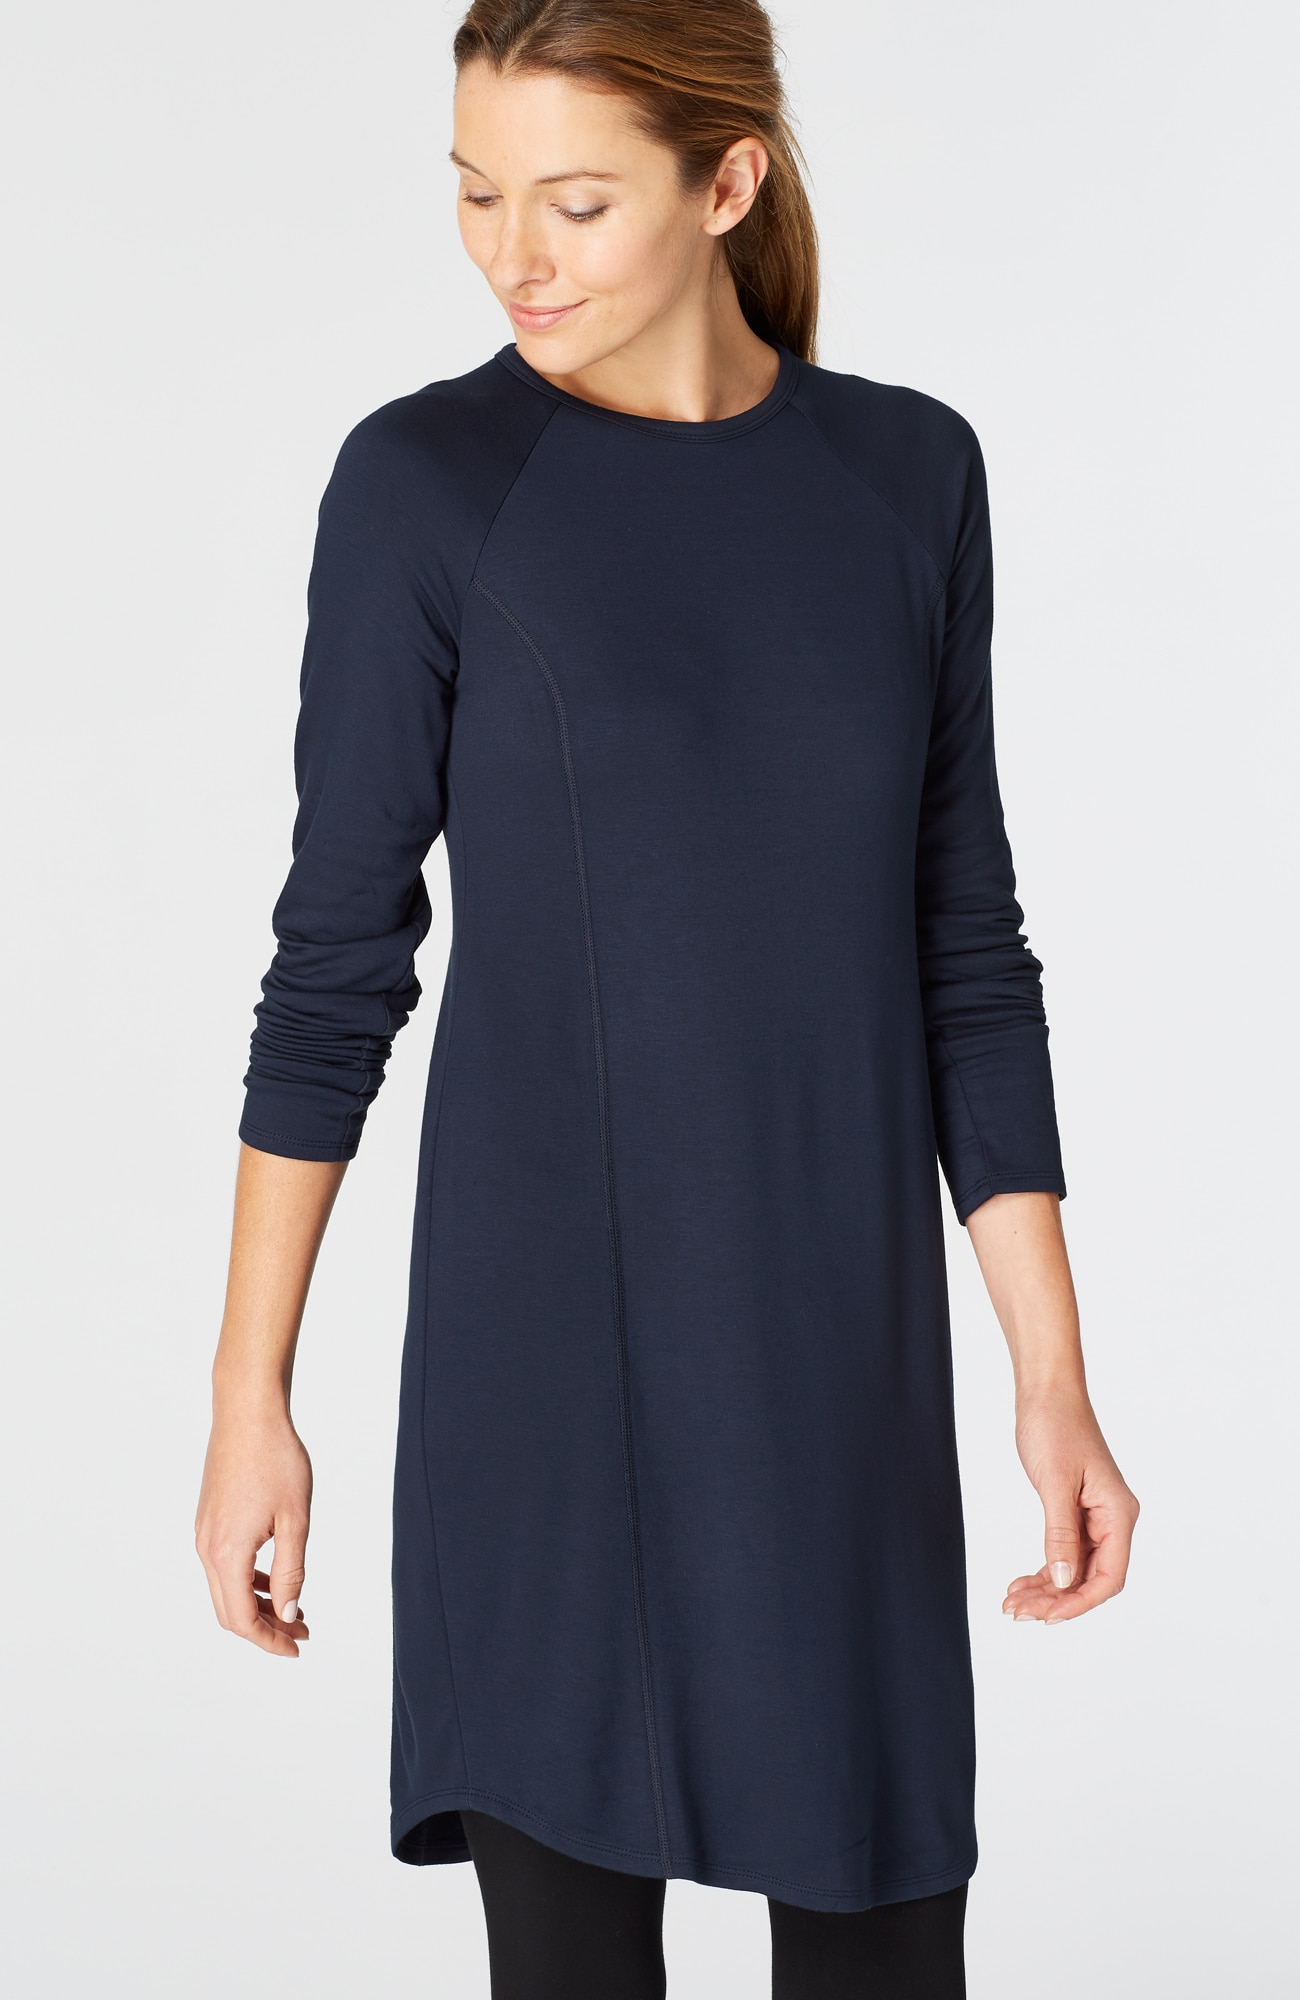 Pure Jill Fit seamed shirttail dress